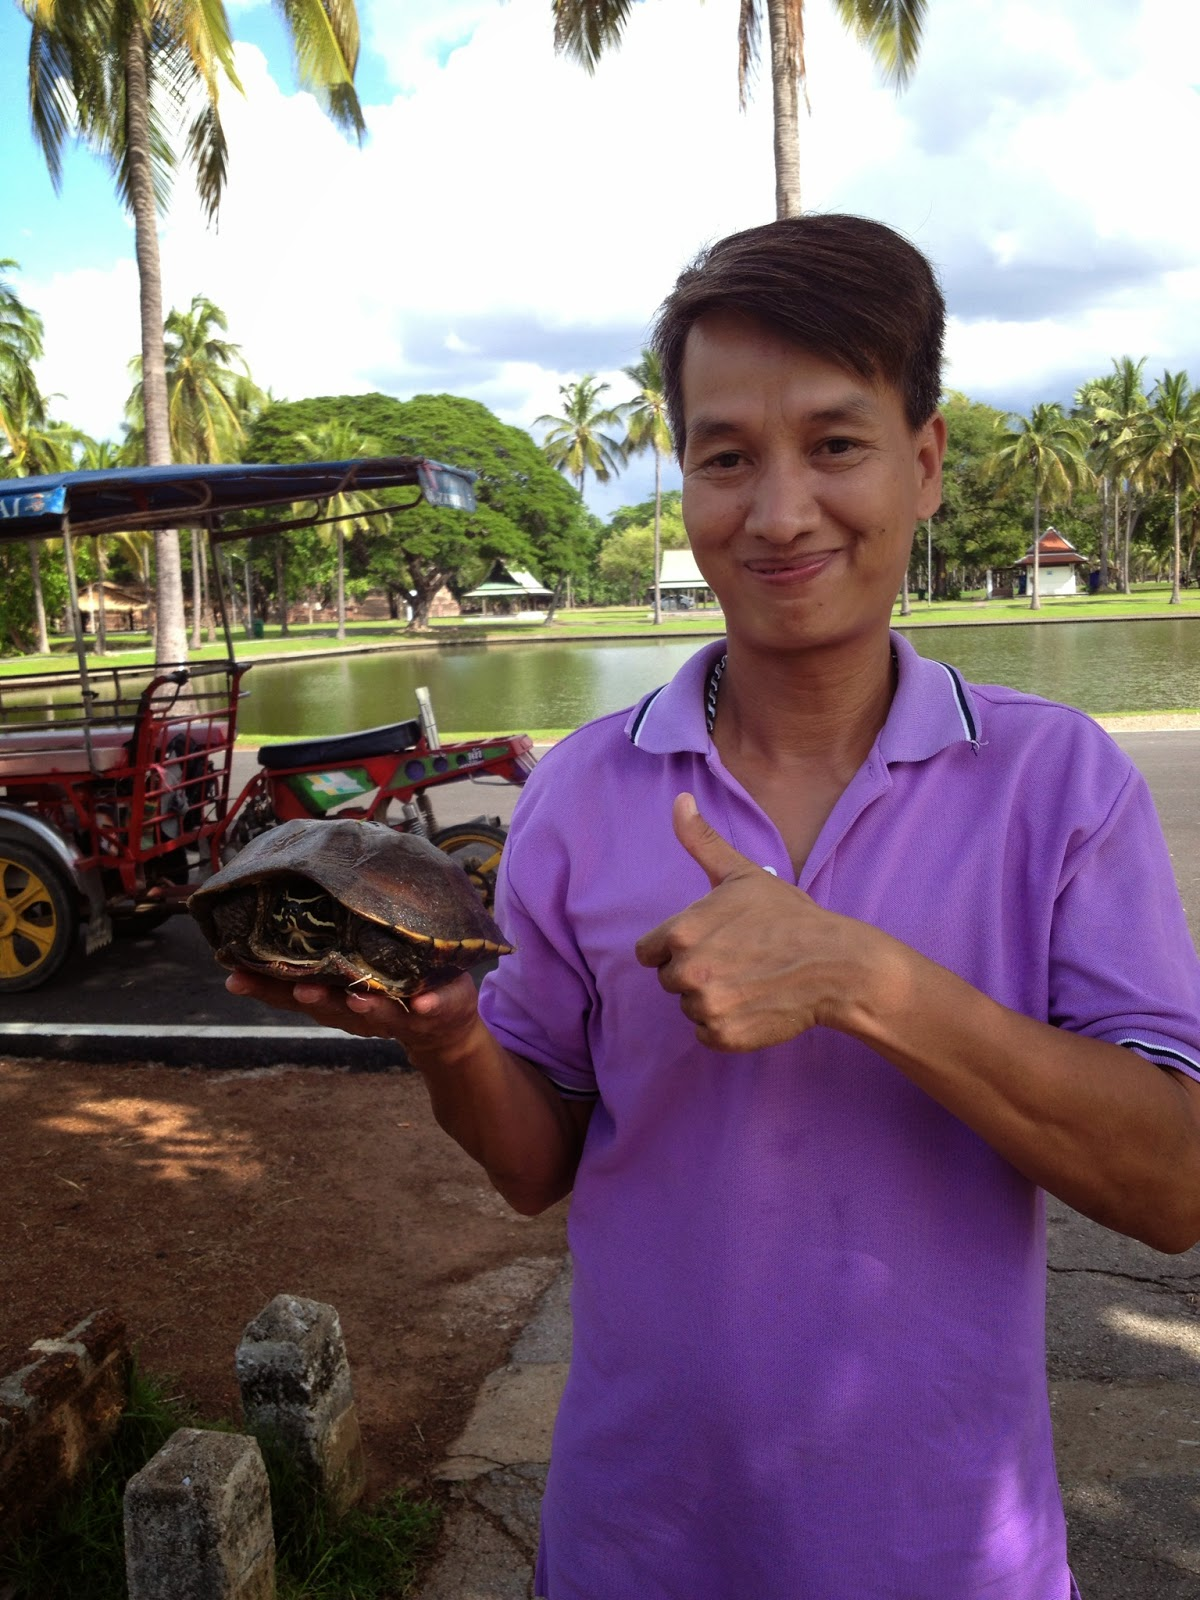 Old Sukhothai - Prajin caught a turtle for each of us to release for good luck!